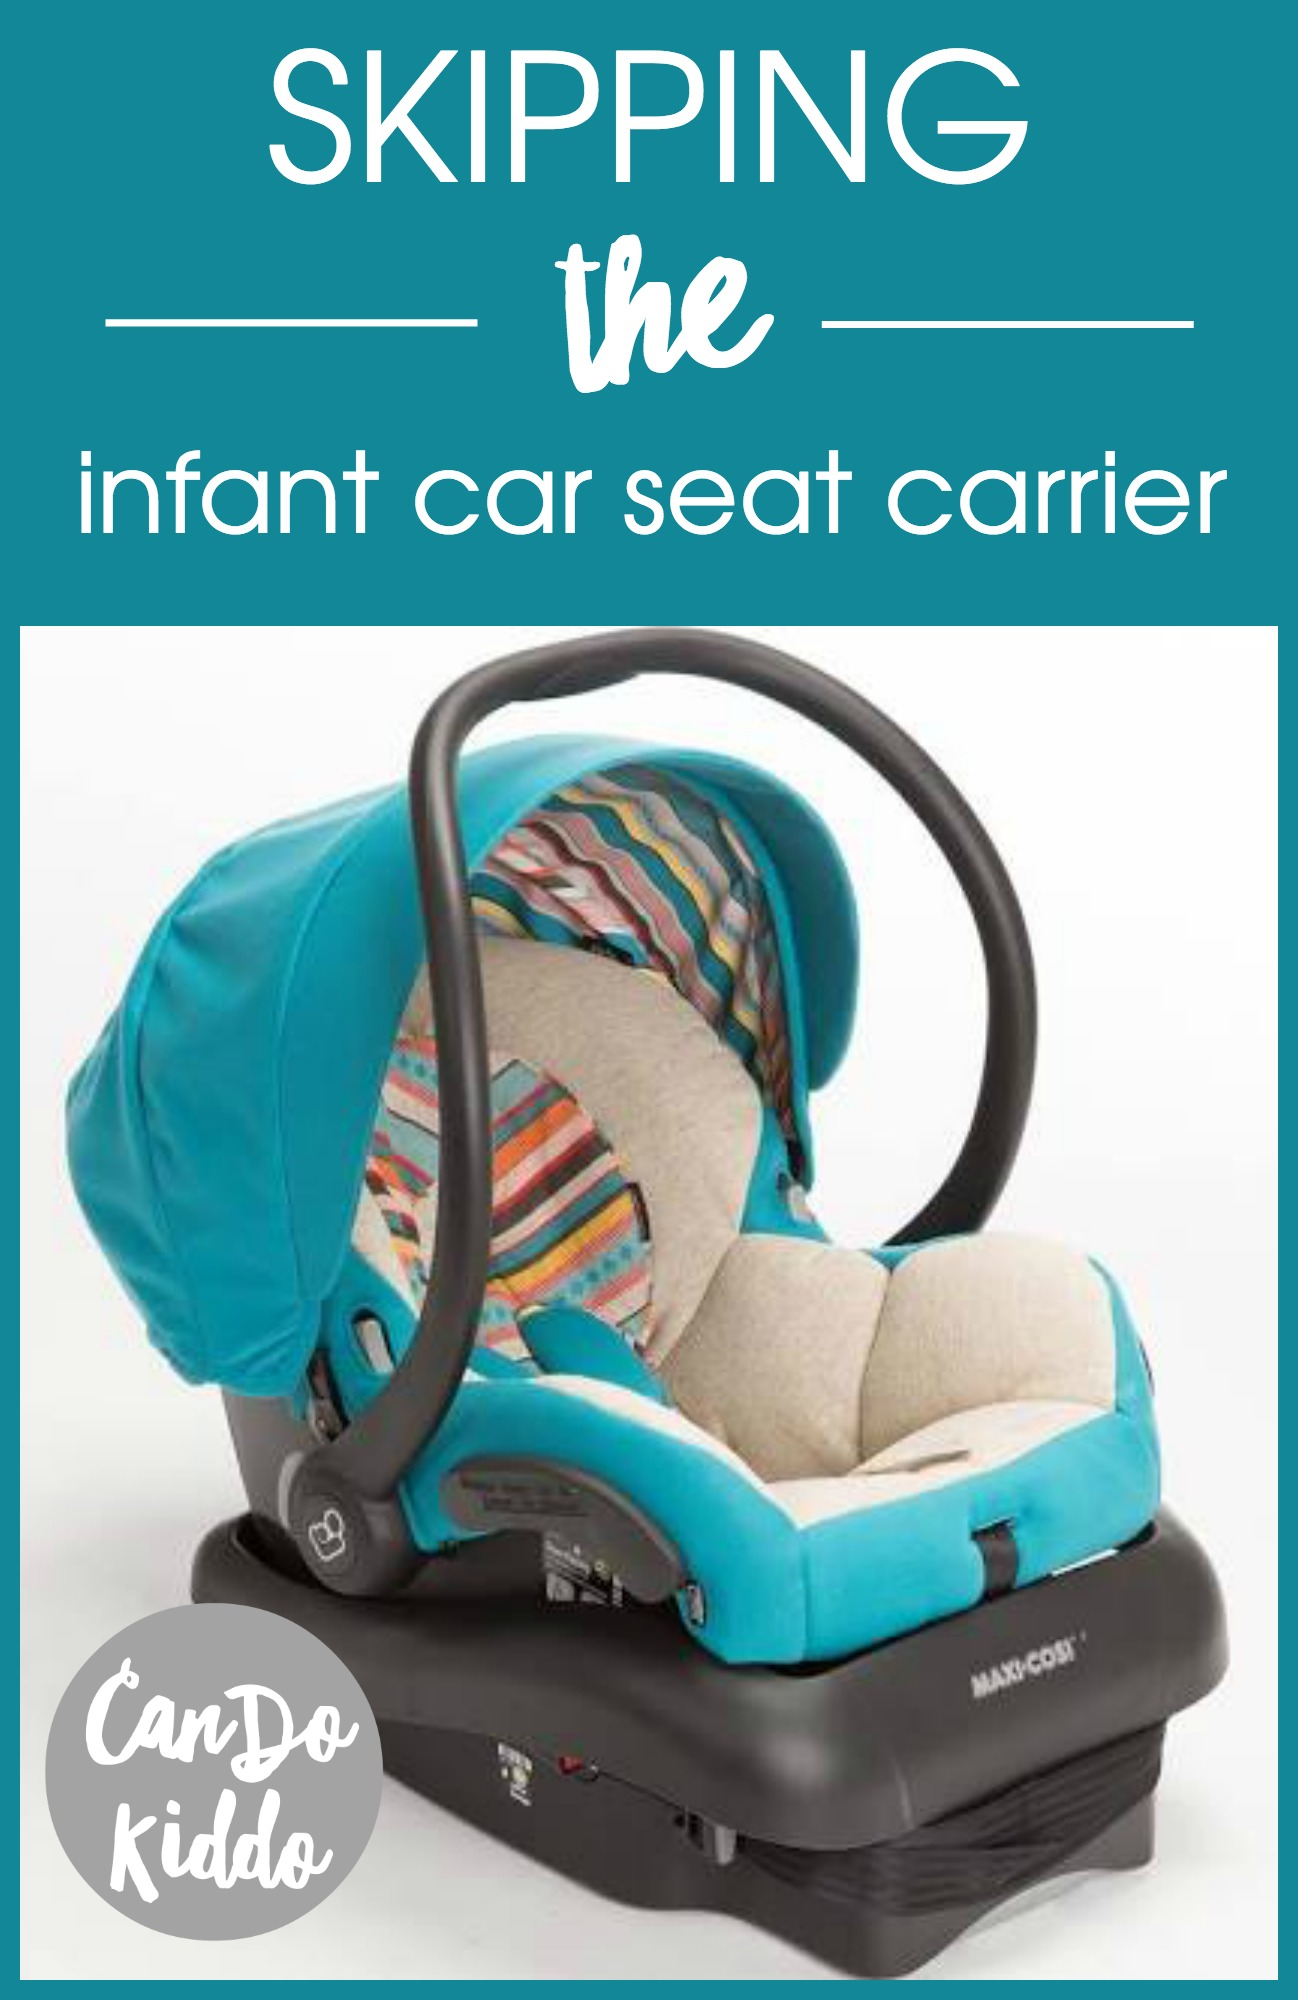 Infant Carrier Seat >> How To Skip Buying An Infant Car Seat Carrier Cando Kiddo